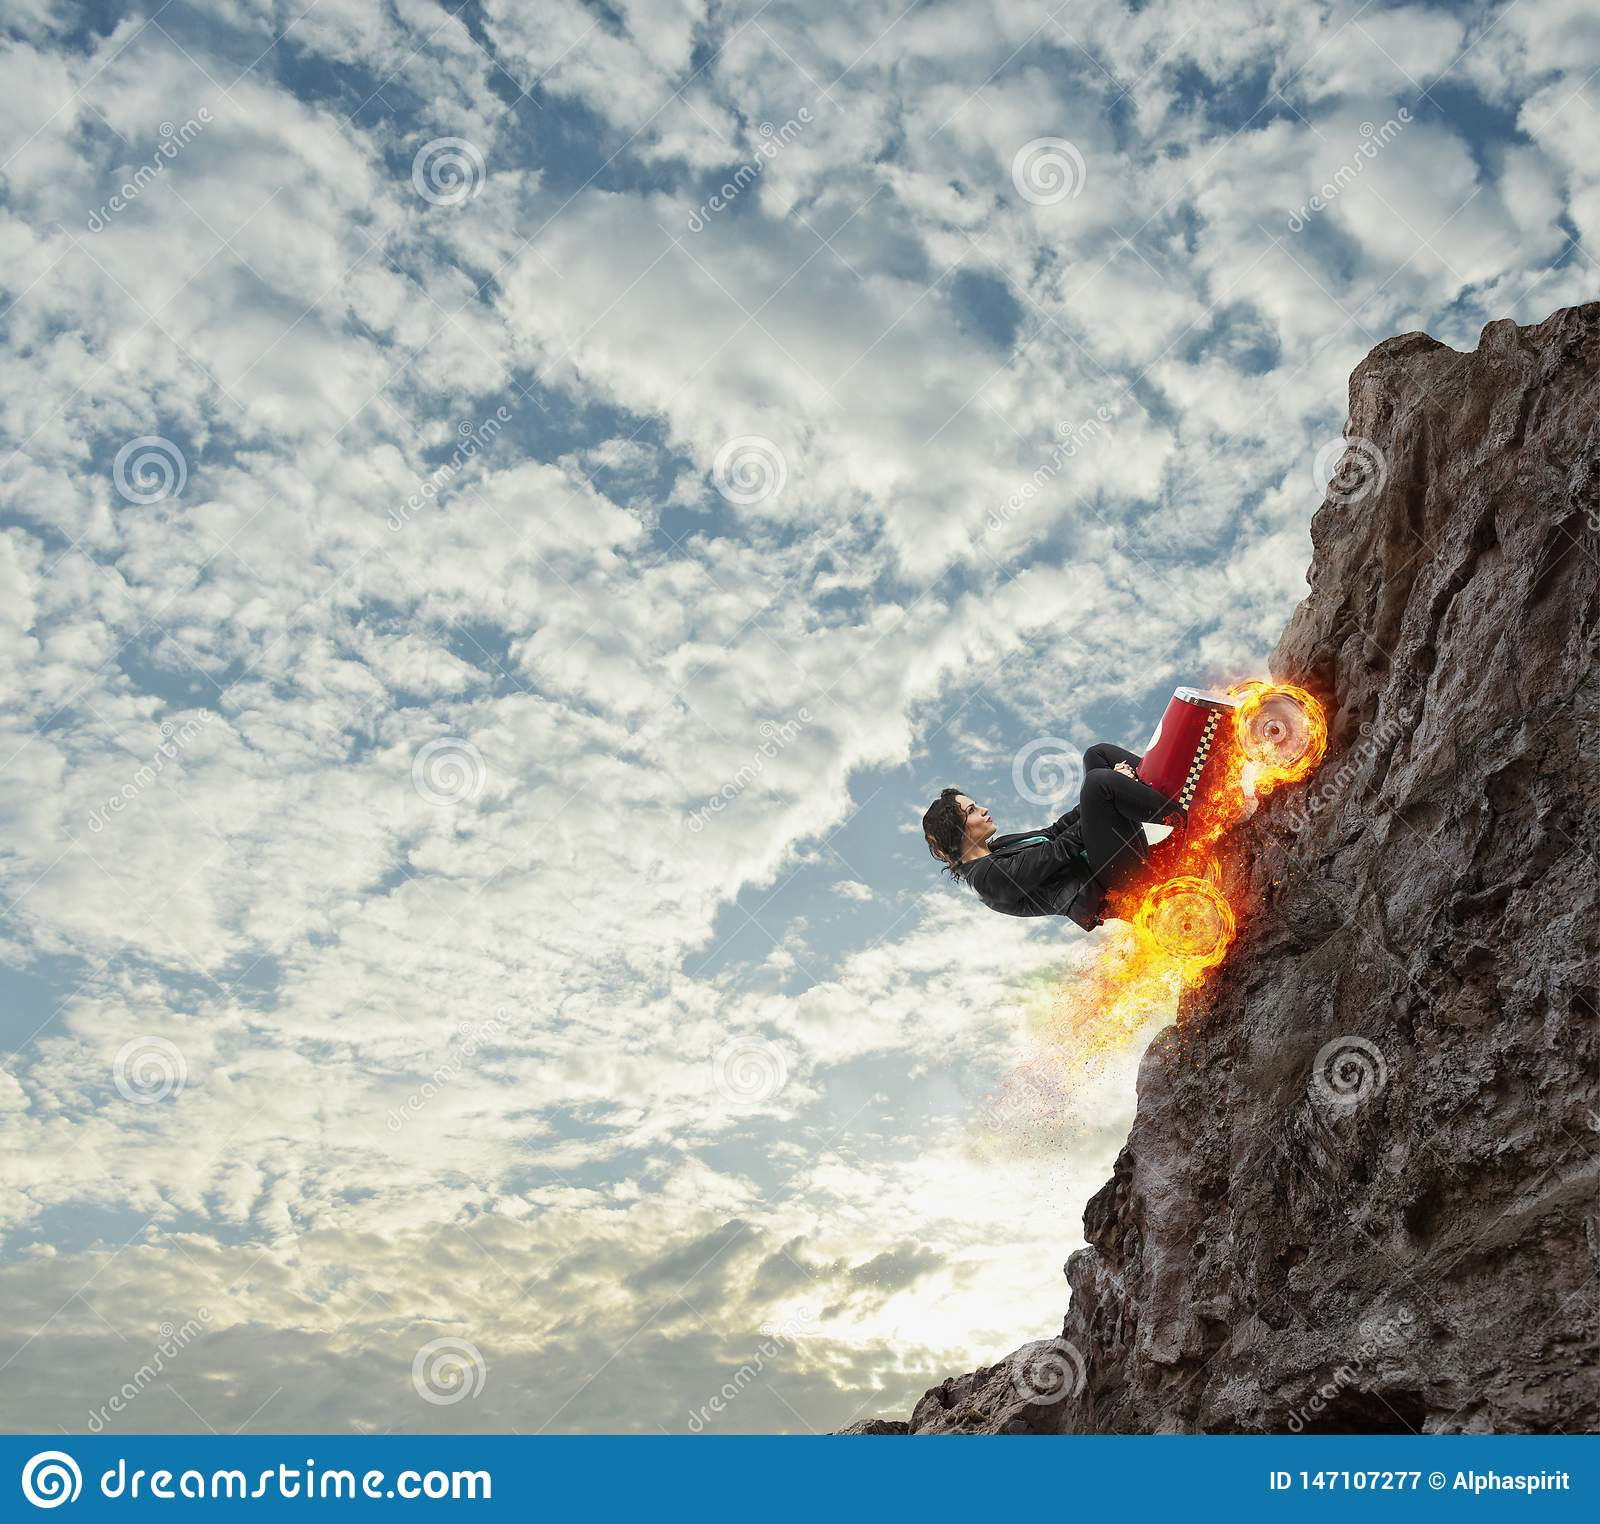 Fast businesswoman with a car climbs a mountain. Concept of success and competition.